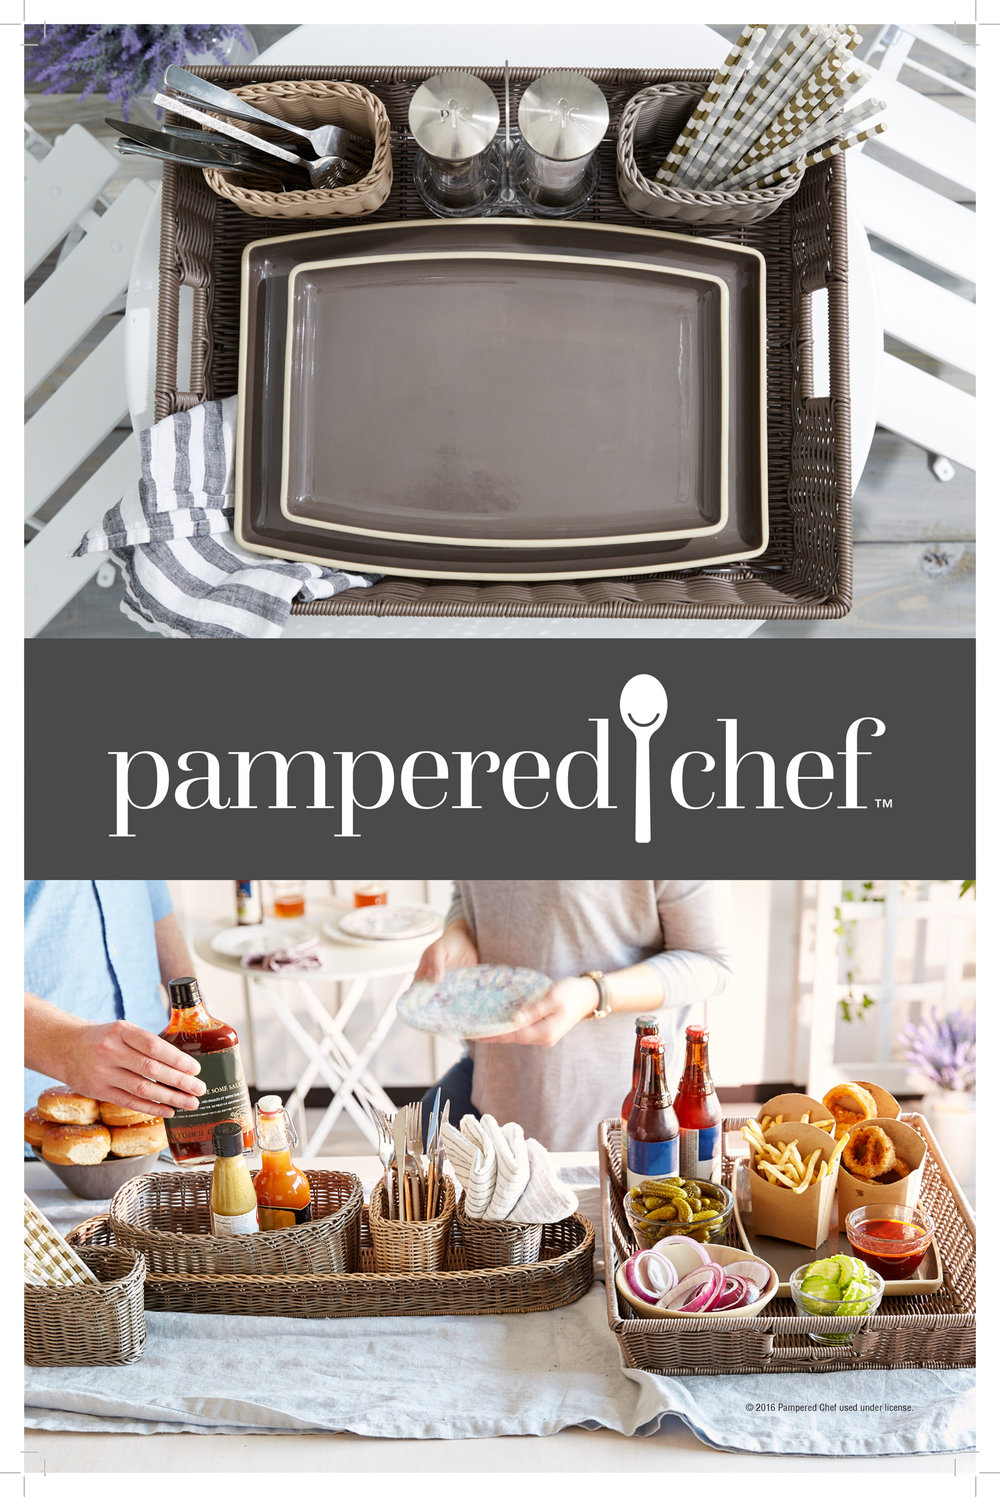 https://www.pamperedchef.com/pws/tahni